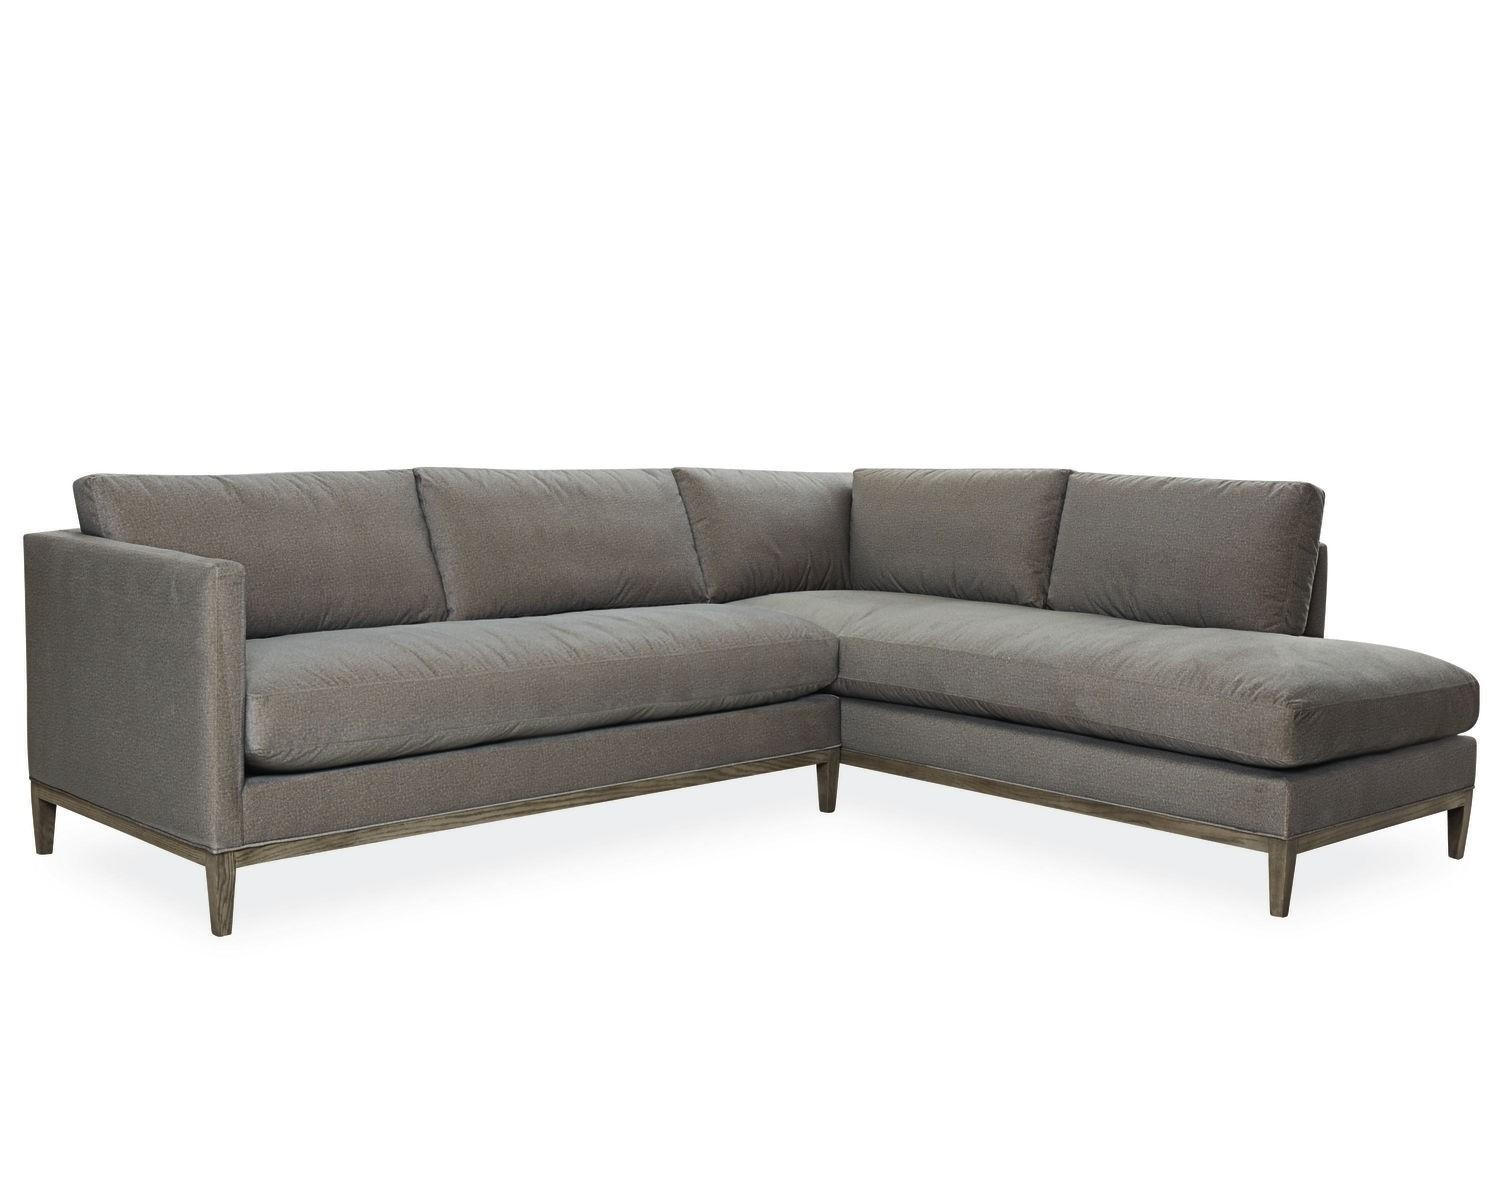 American Furniture | Palm Springs Chaise Sectional | Lee Industries With Regard To Lee Industries Sectional Sofa (Image 8 of 20)